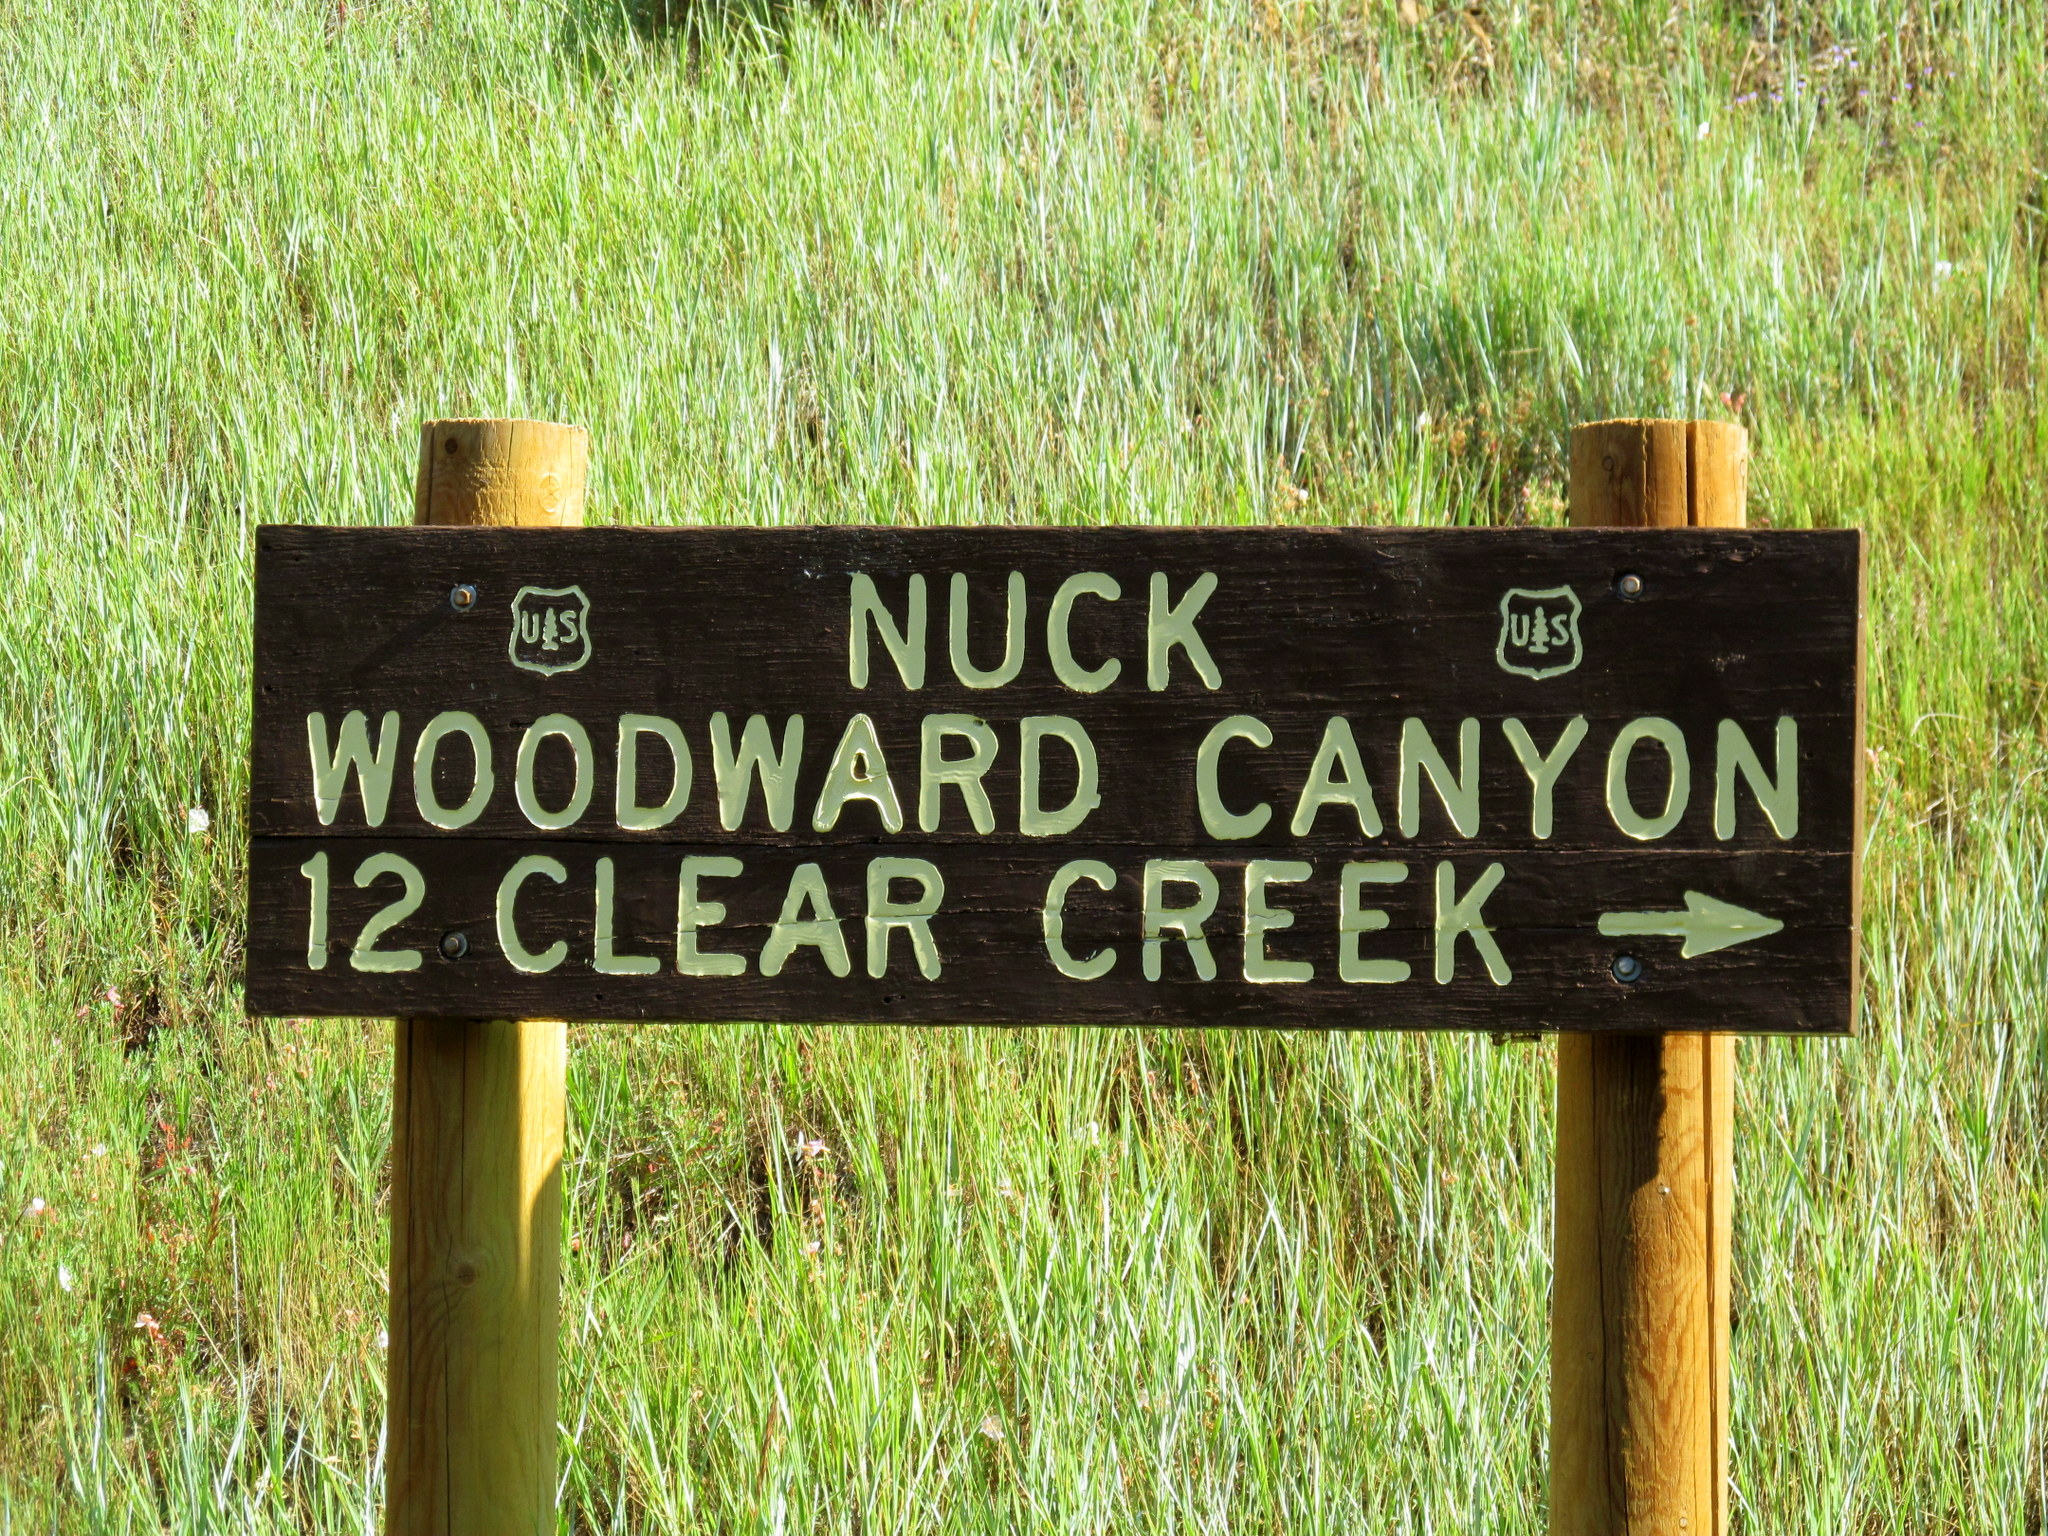 Photo: Nuck Woodward Canyon sign